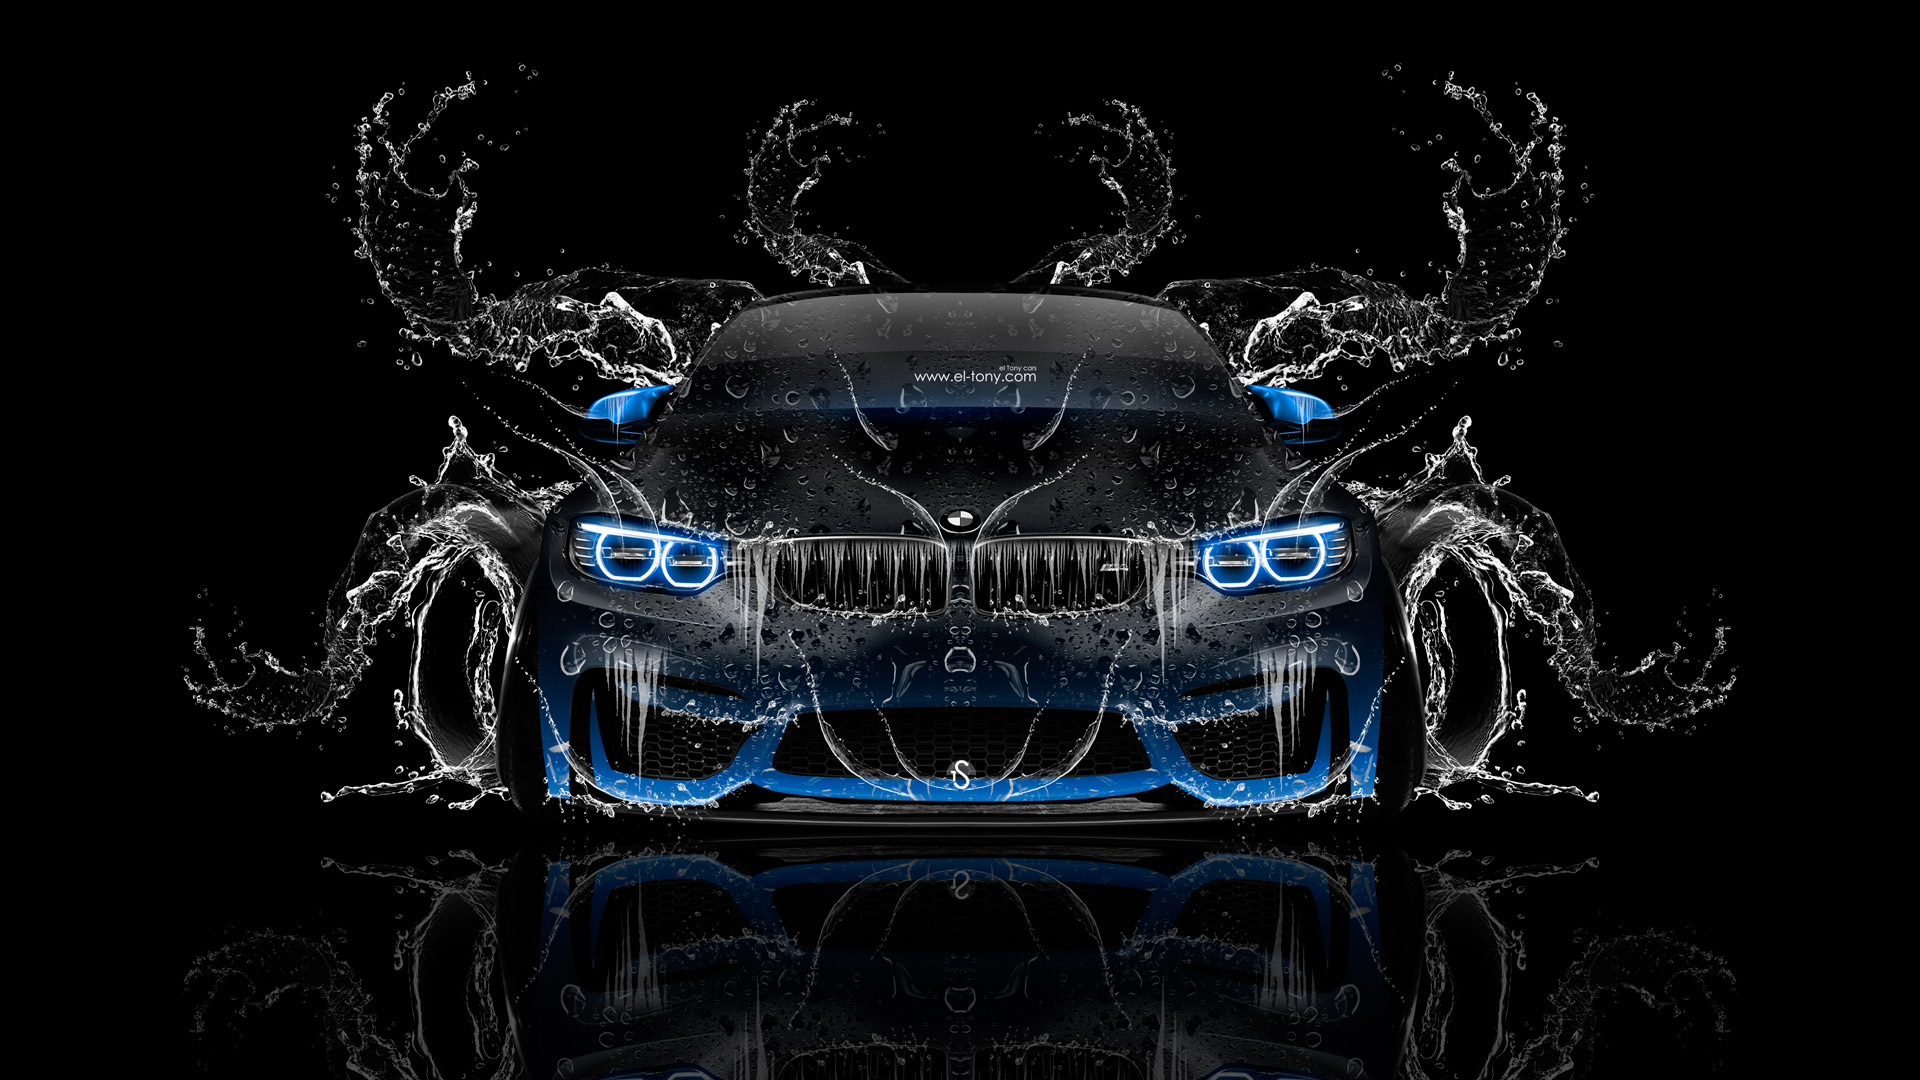 BMW M4 Tuning Front Super Splashes Water Car